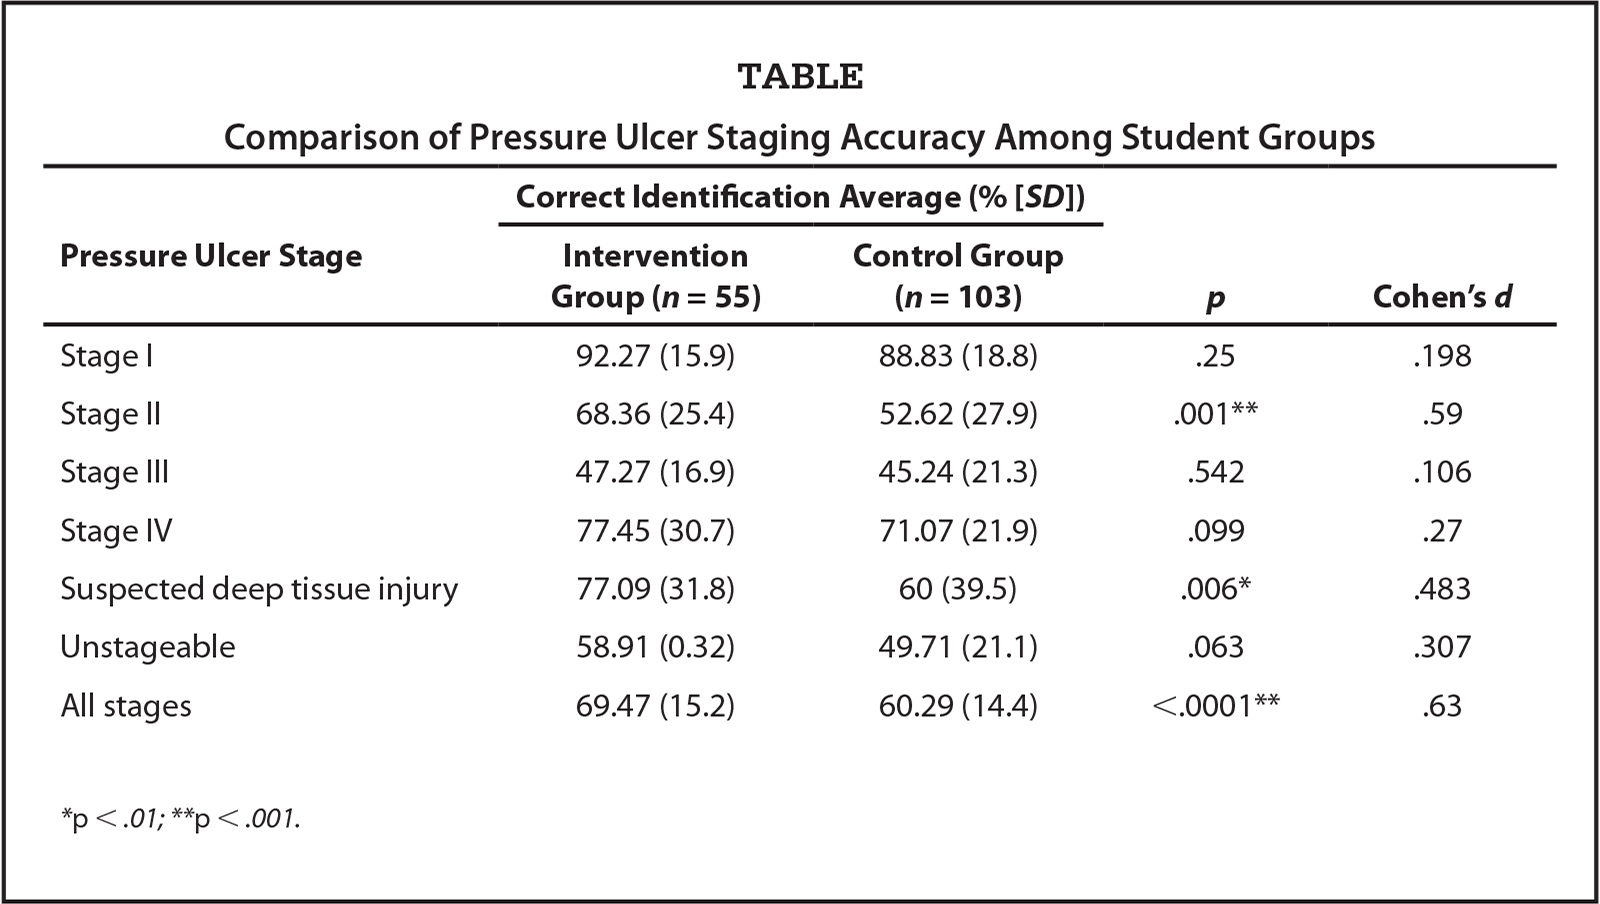 Comparison of Pressure Ulcer Staging Accuracy Among Student Groups